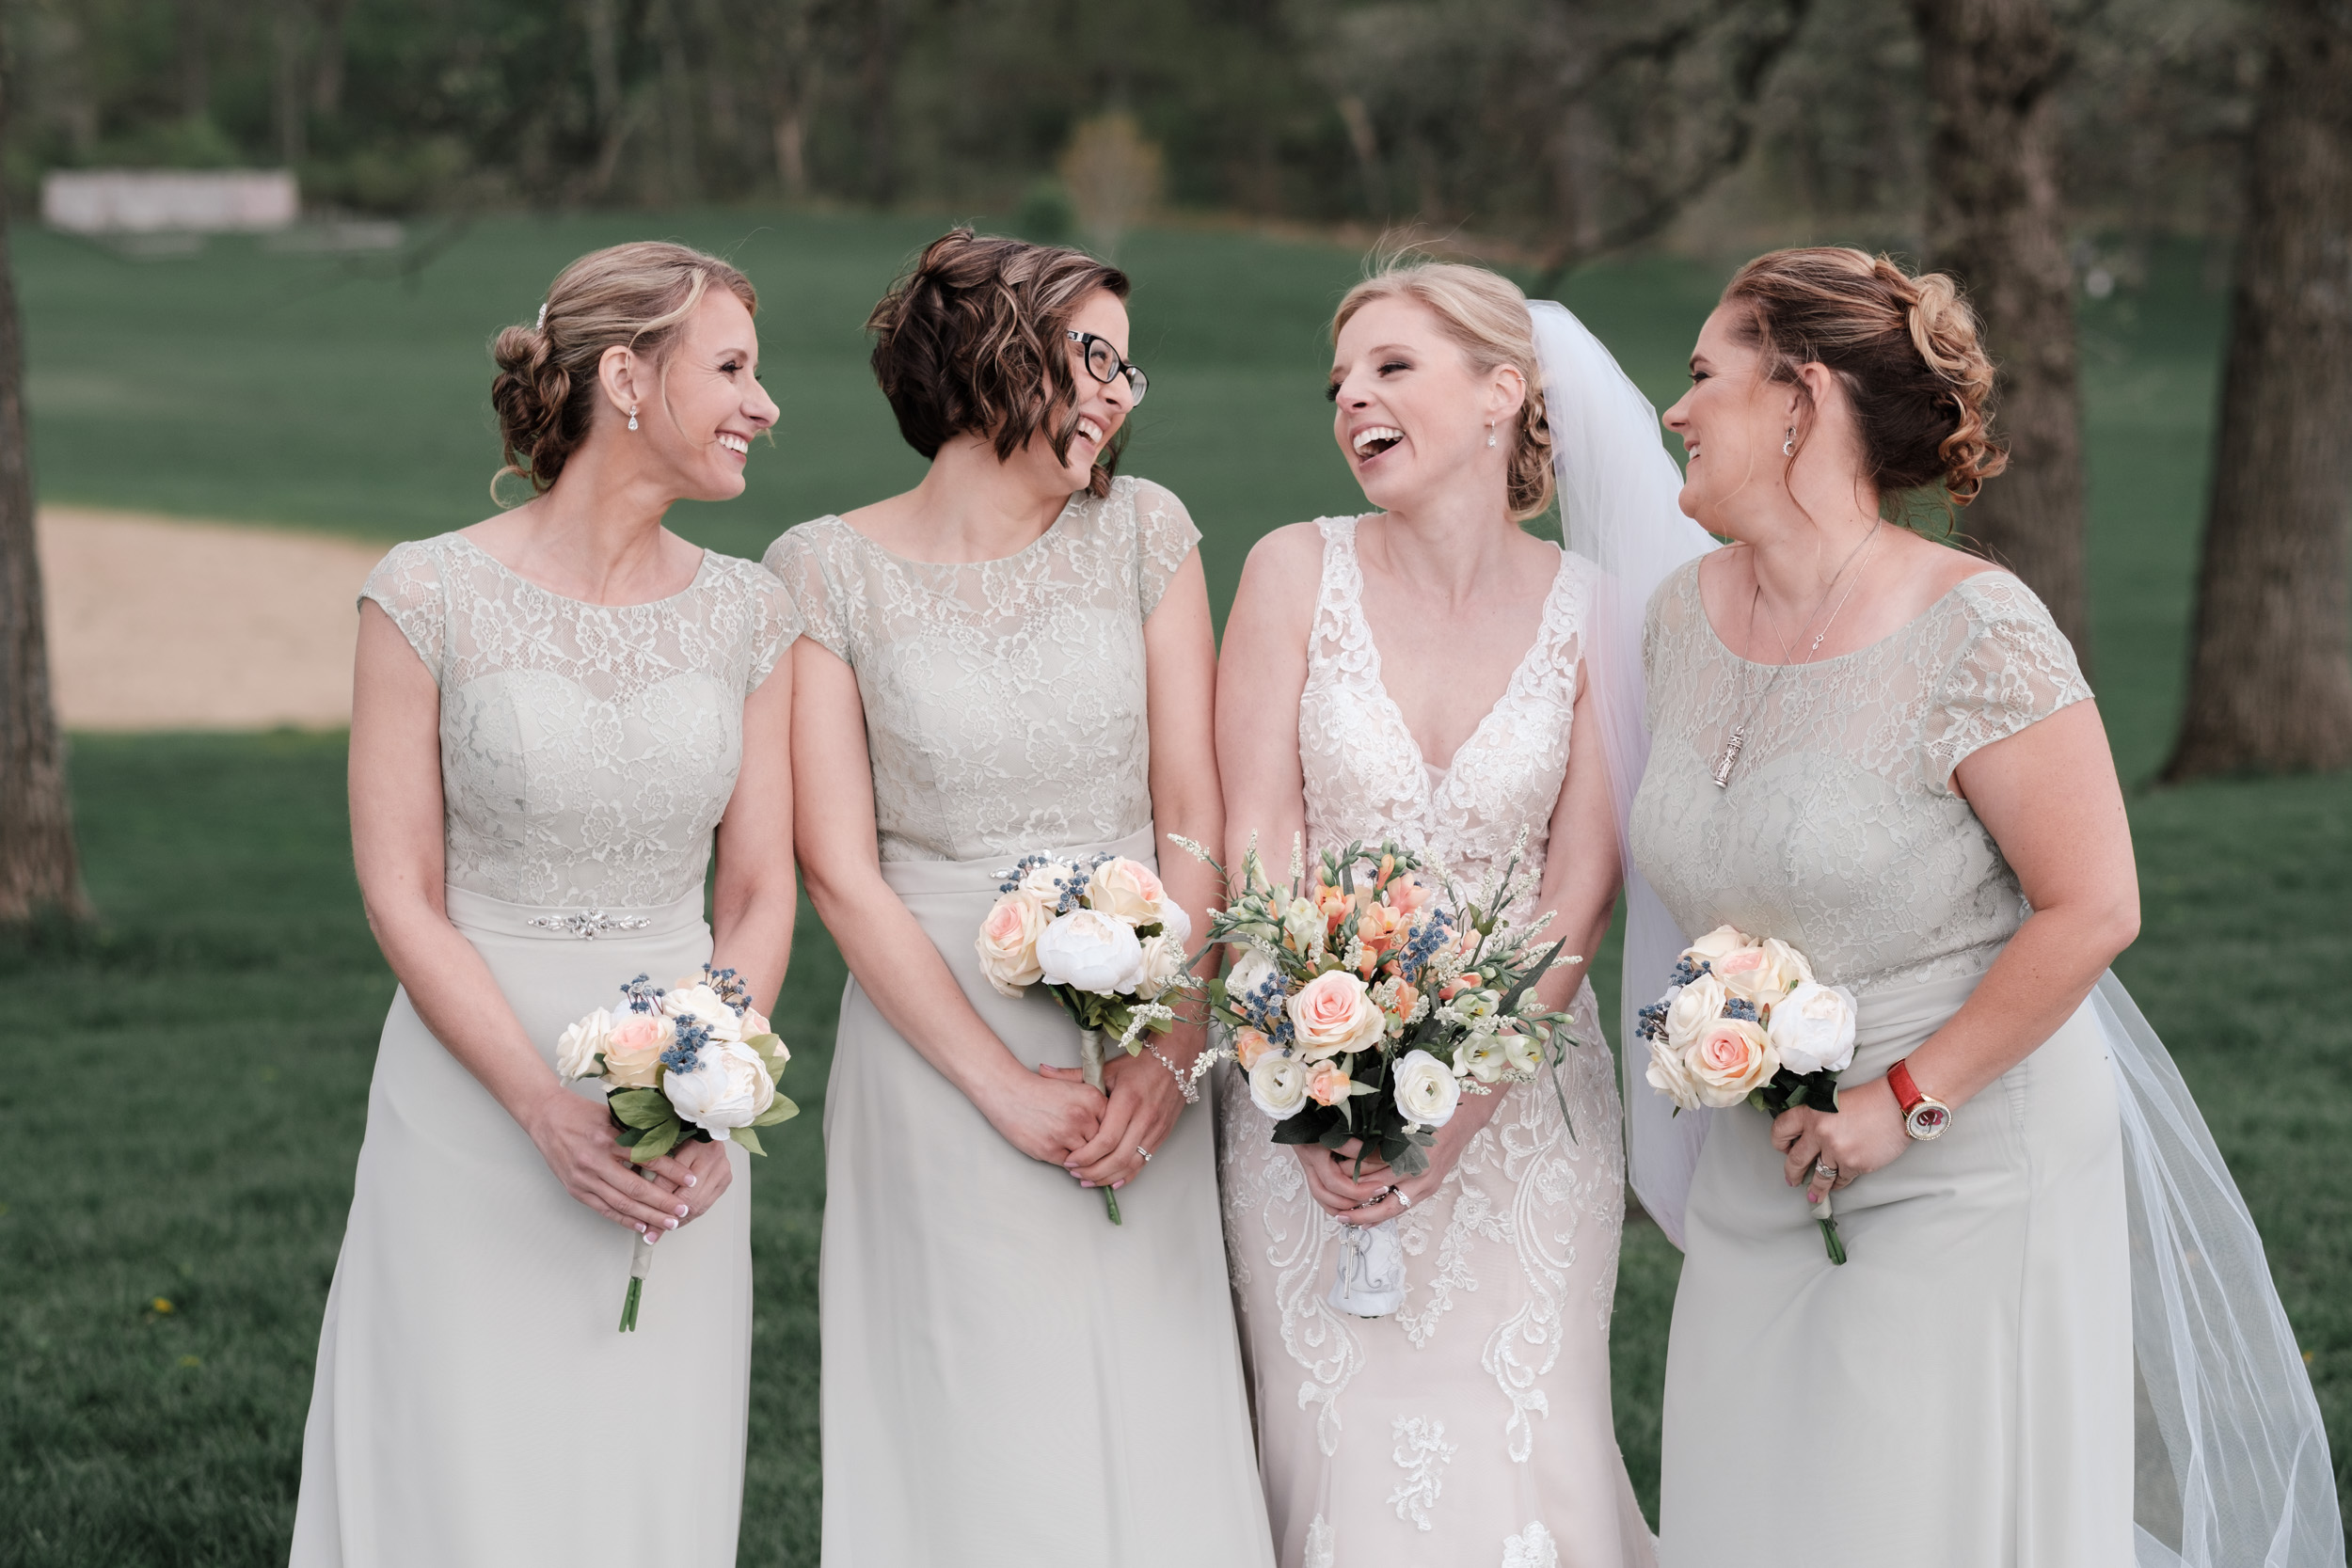 candid portrait of bride and bridesmaids on wedding day